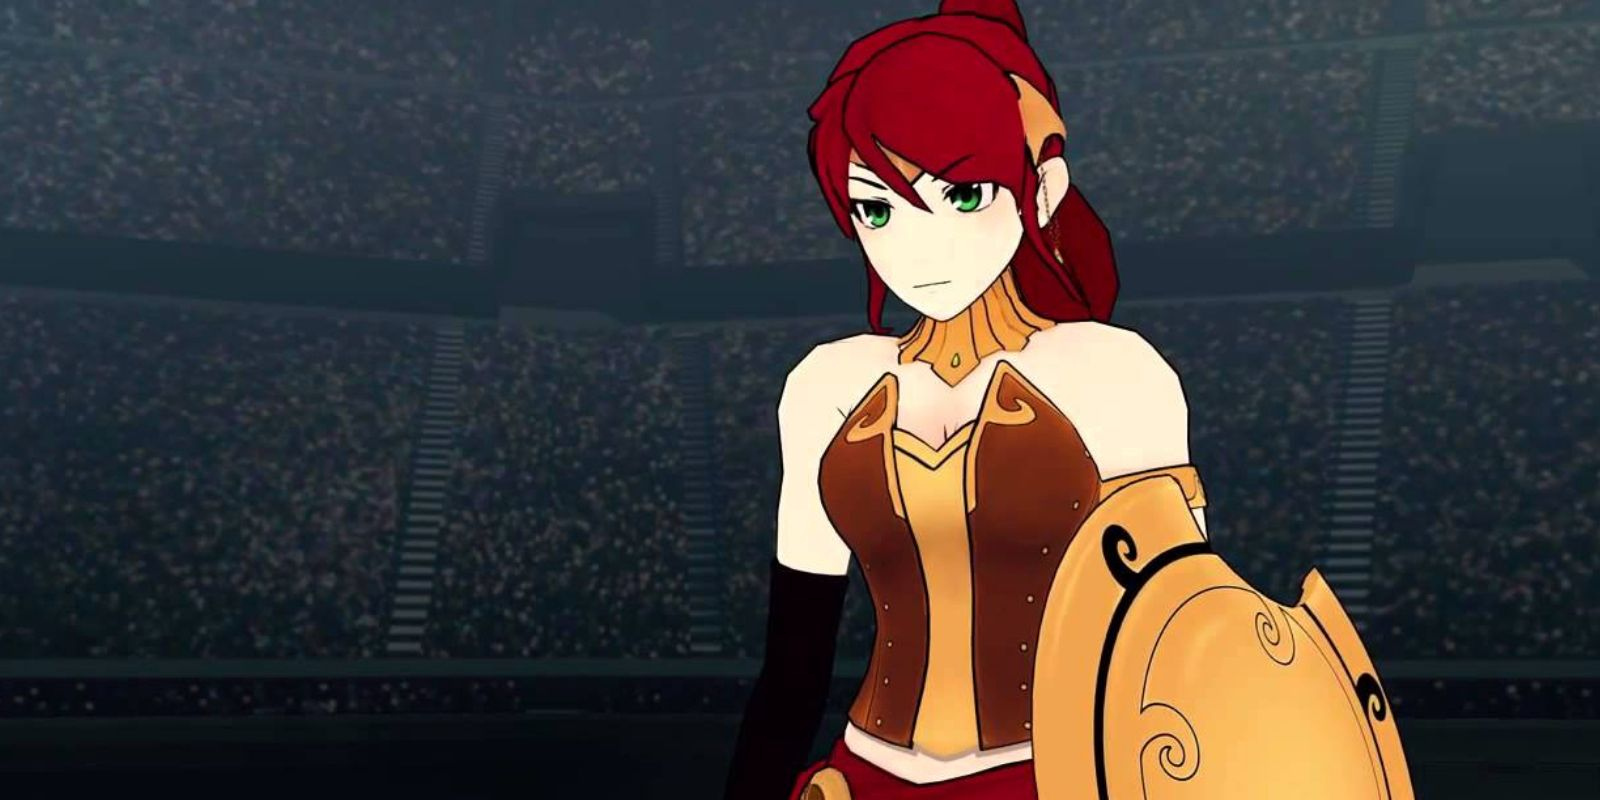 RWBY Characters Ranked From Least To Most Likely To Win The Hunger Games